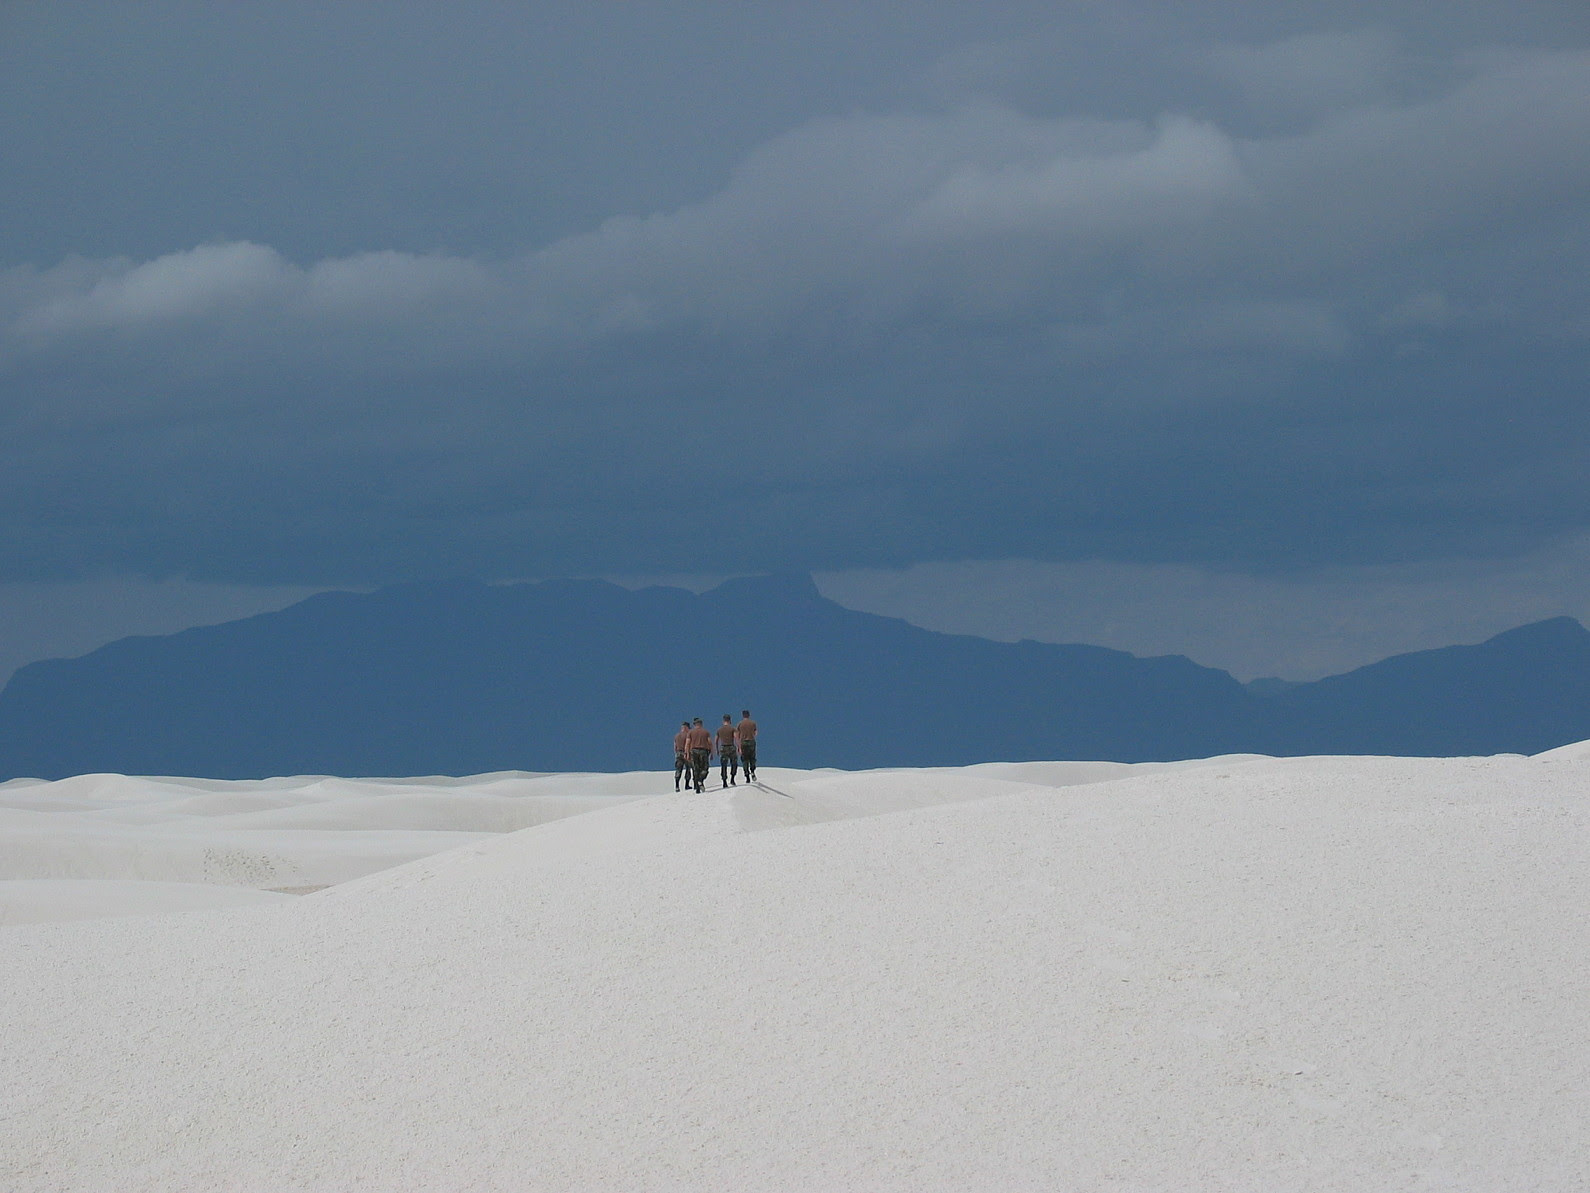 http://upload.wikimedia.org/wikipedia/commons/3/39/White_sands_soldiers2.jpg